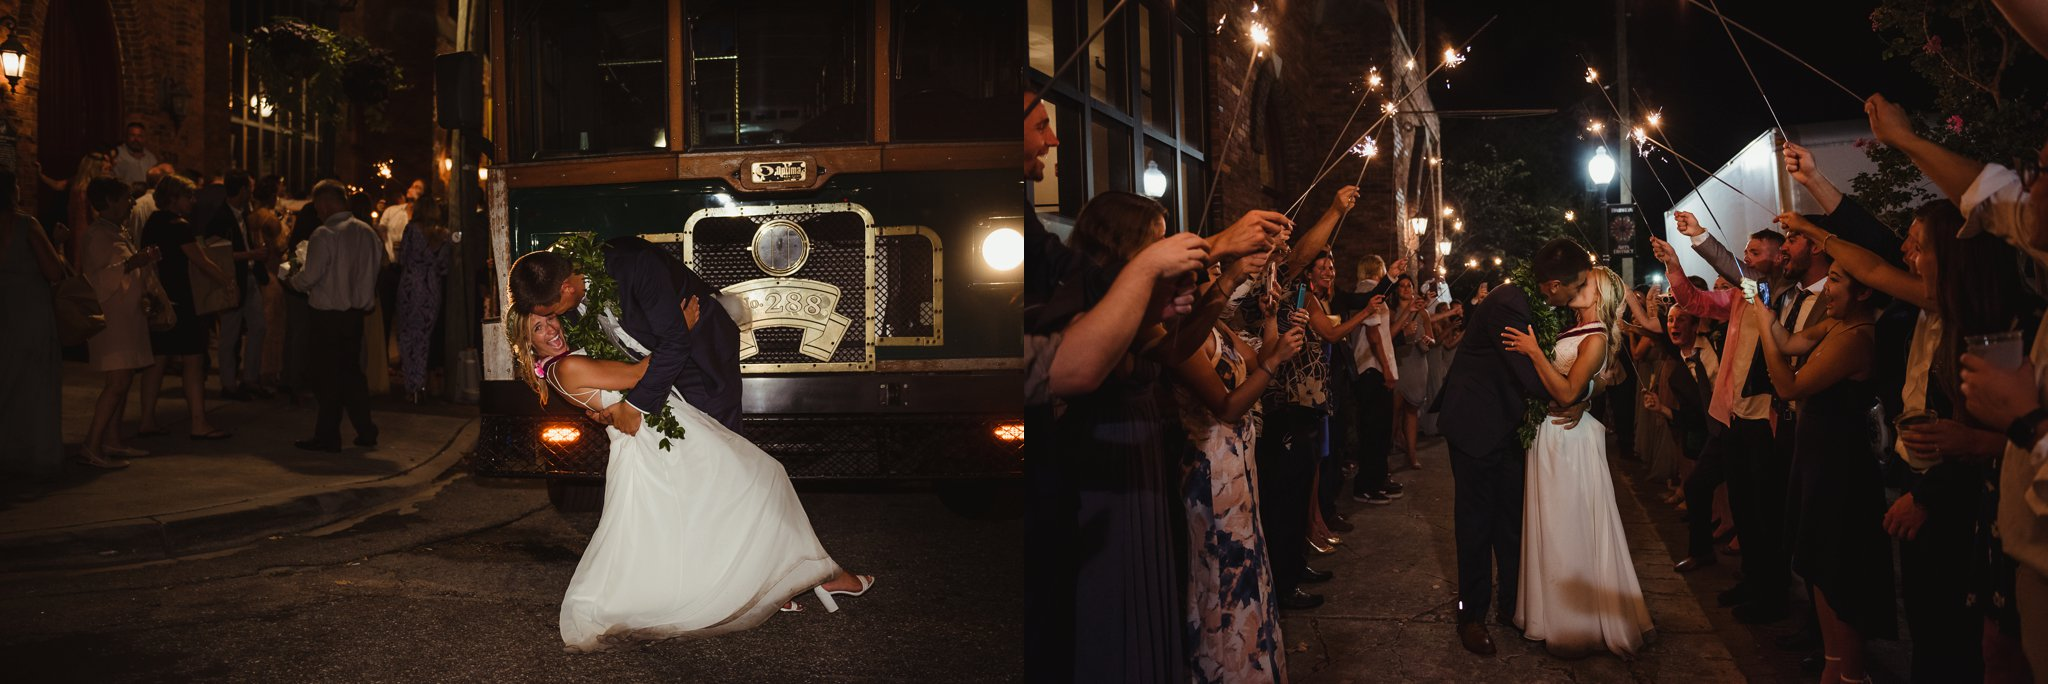 The bride and groom kiss in front of the trolley and in the sparkler exit at their wedding reception in Wilmington, NC, photos by Rose Trail Images.